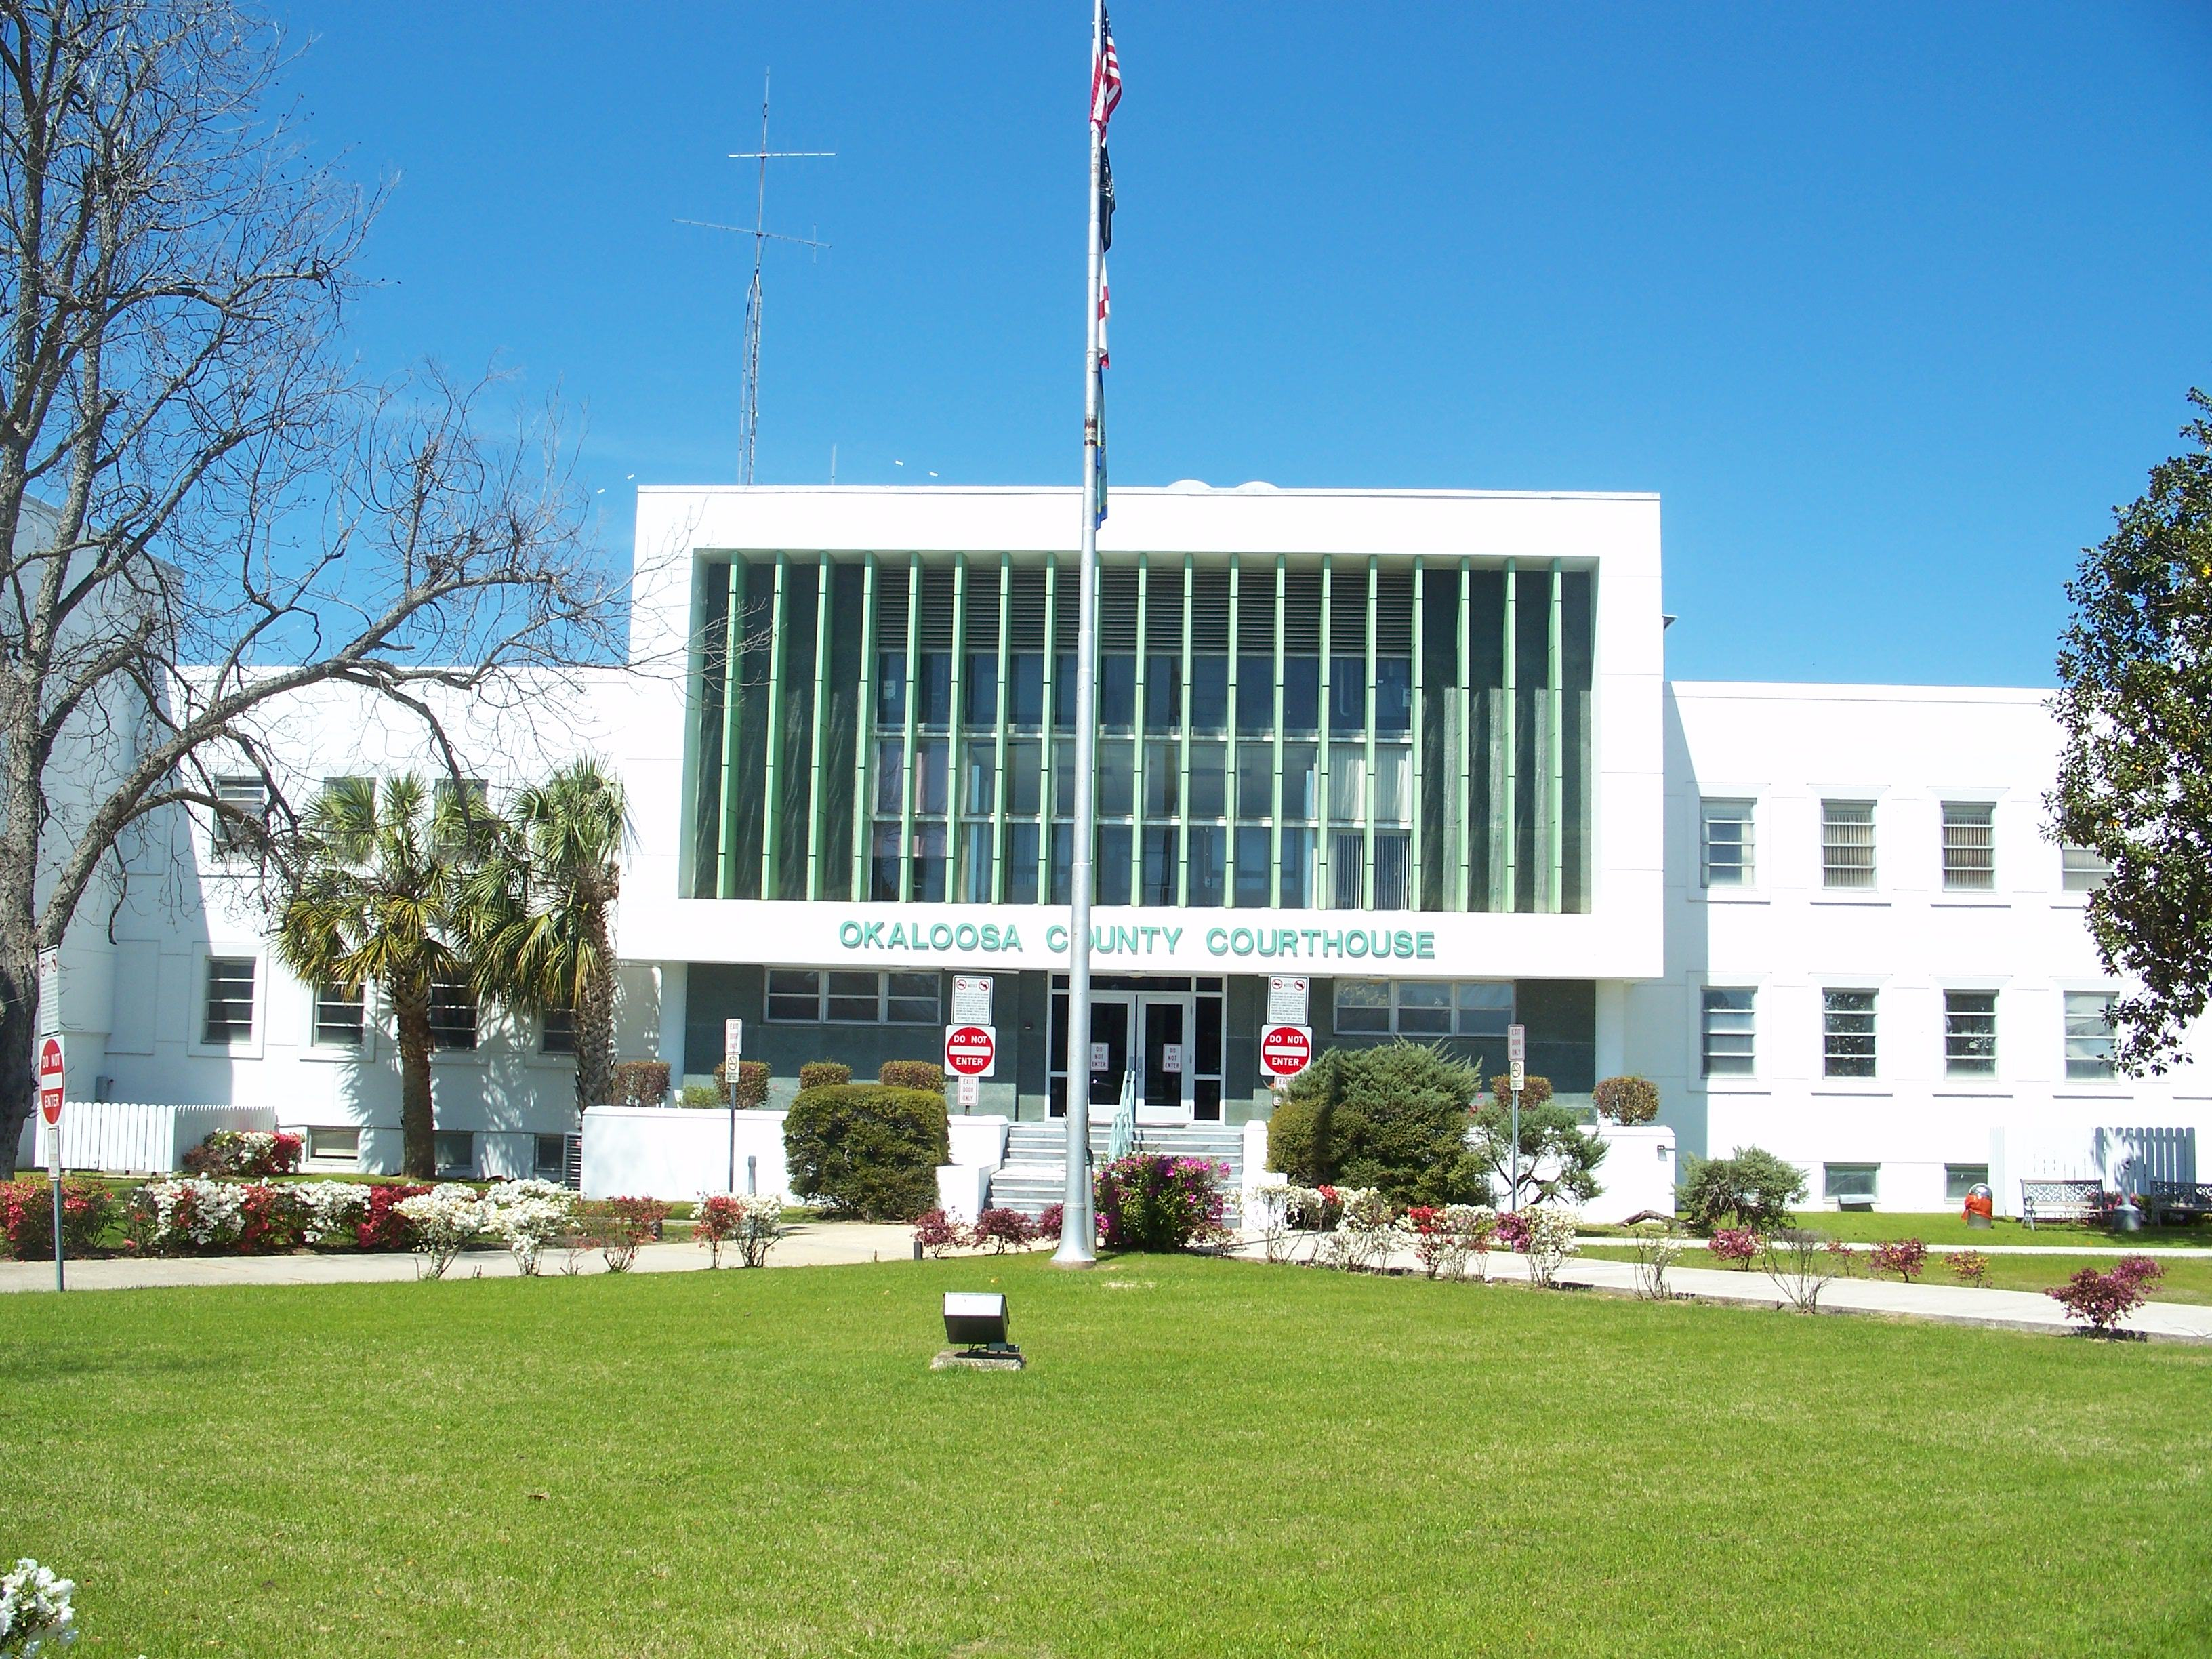 Busted Woman Doesnt Know How Drugs Ended Up In Her Vagina Crestview Okaloosa Cty crths01